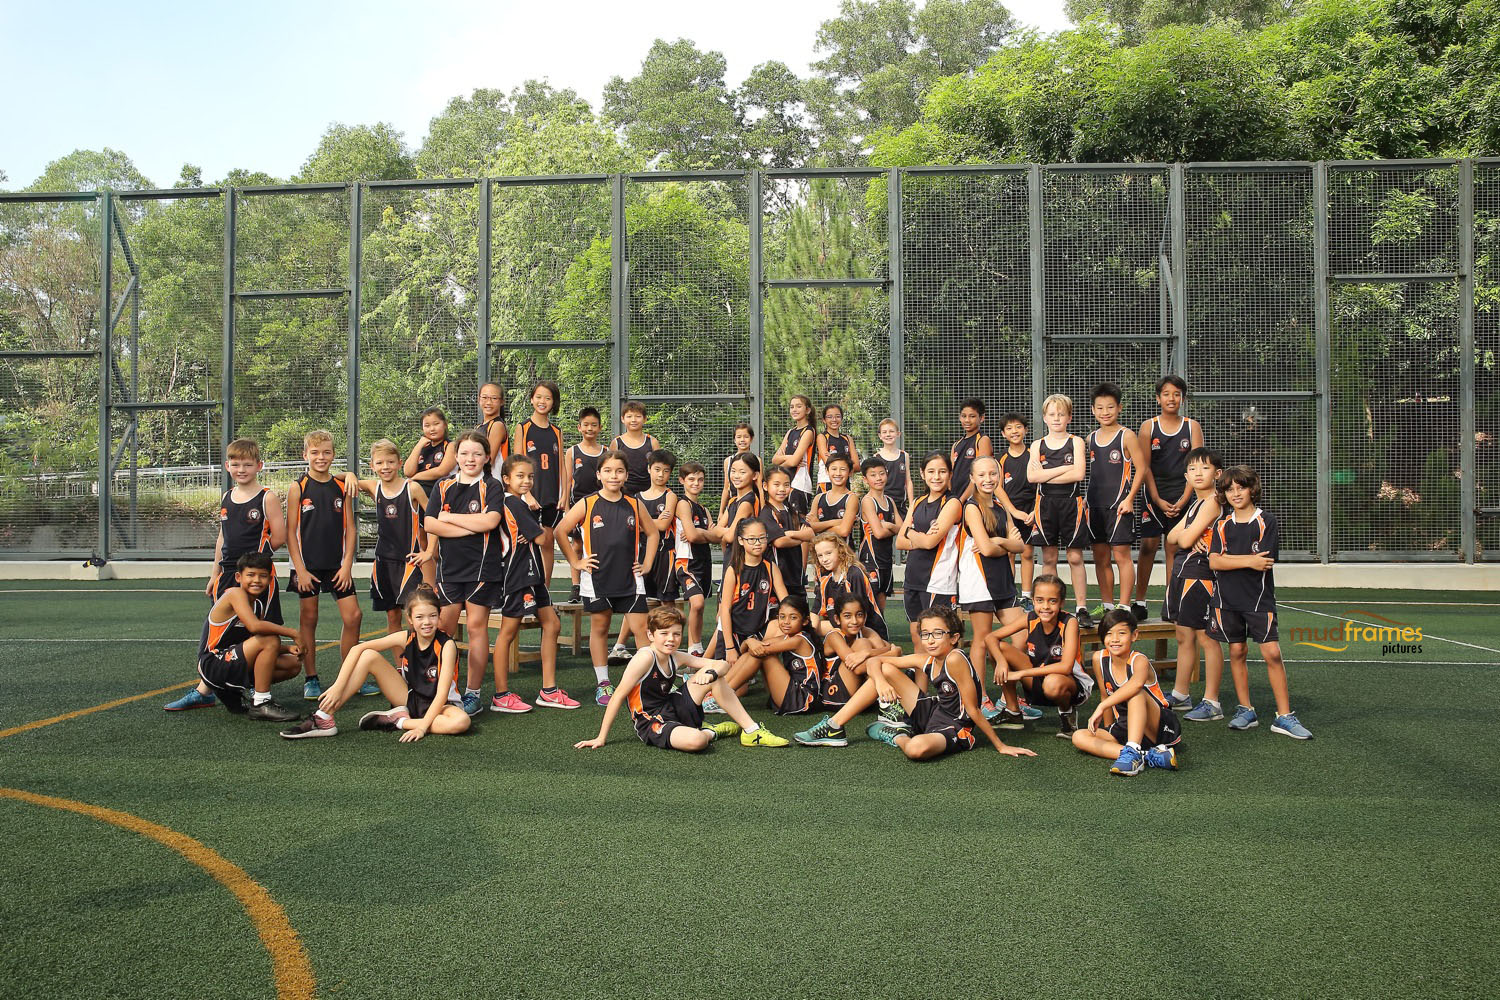 BSKL Athletics Group Shot